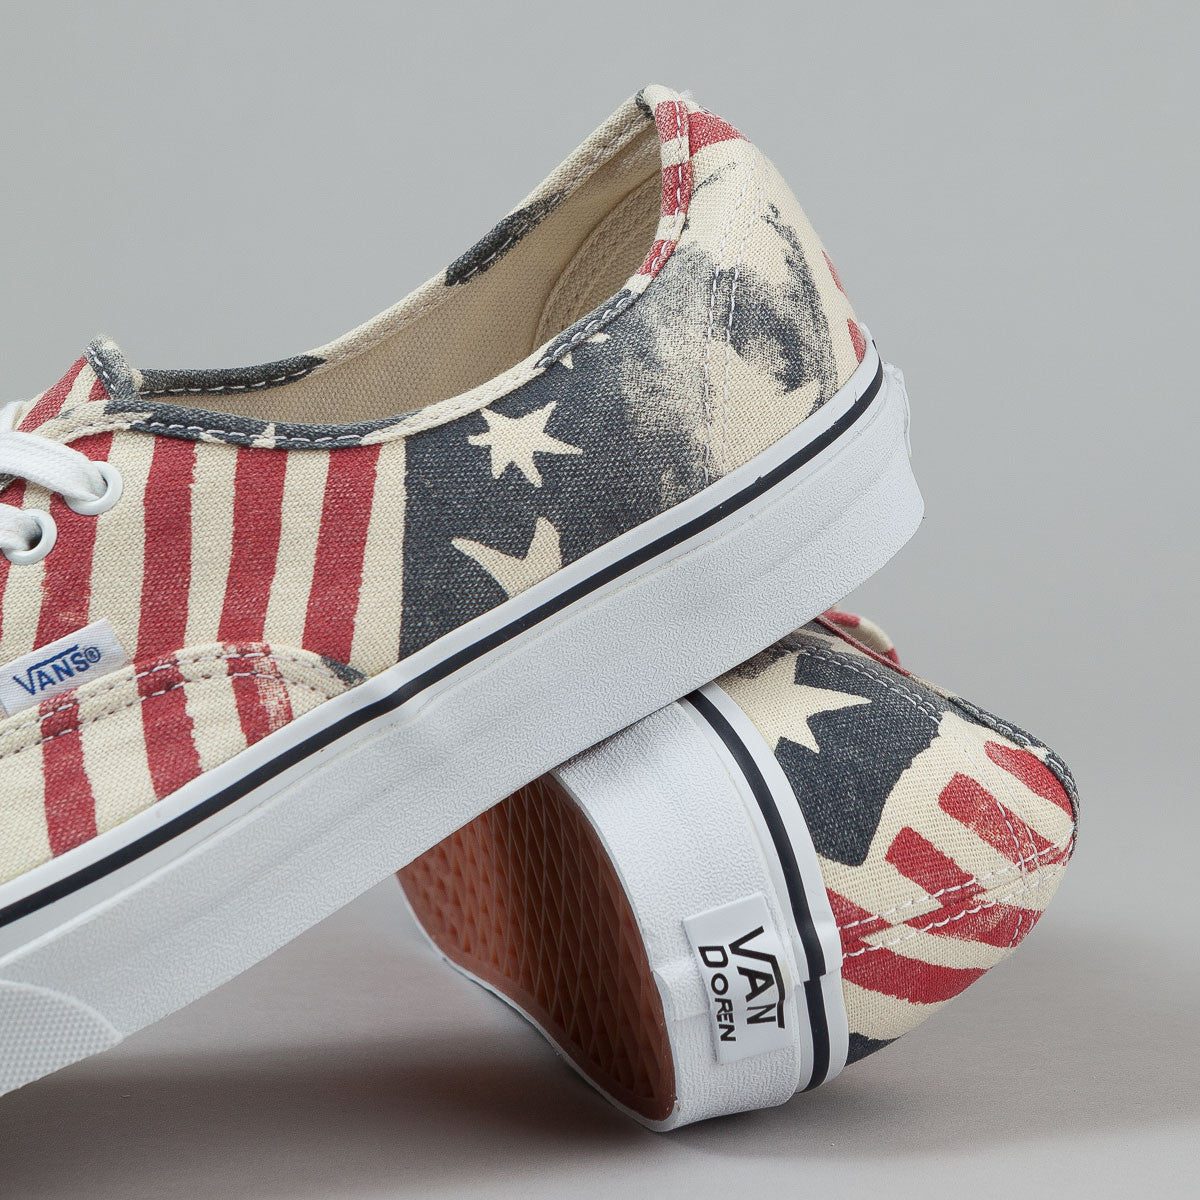 Vans Authentic (Van Doren) Retro Flag